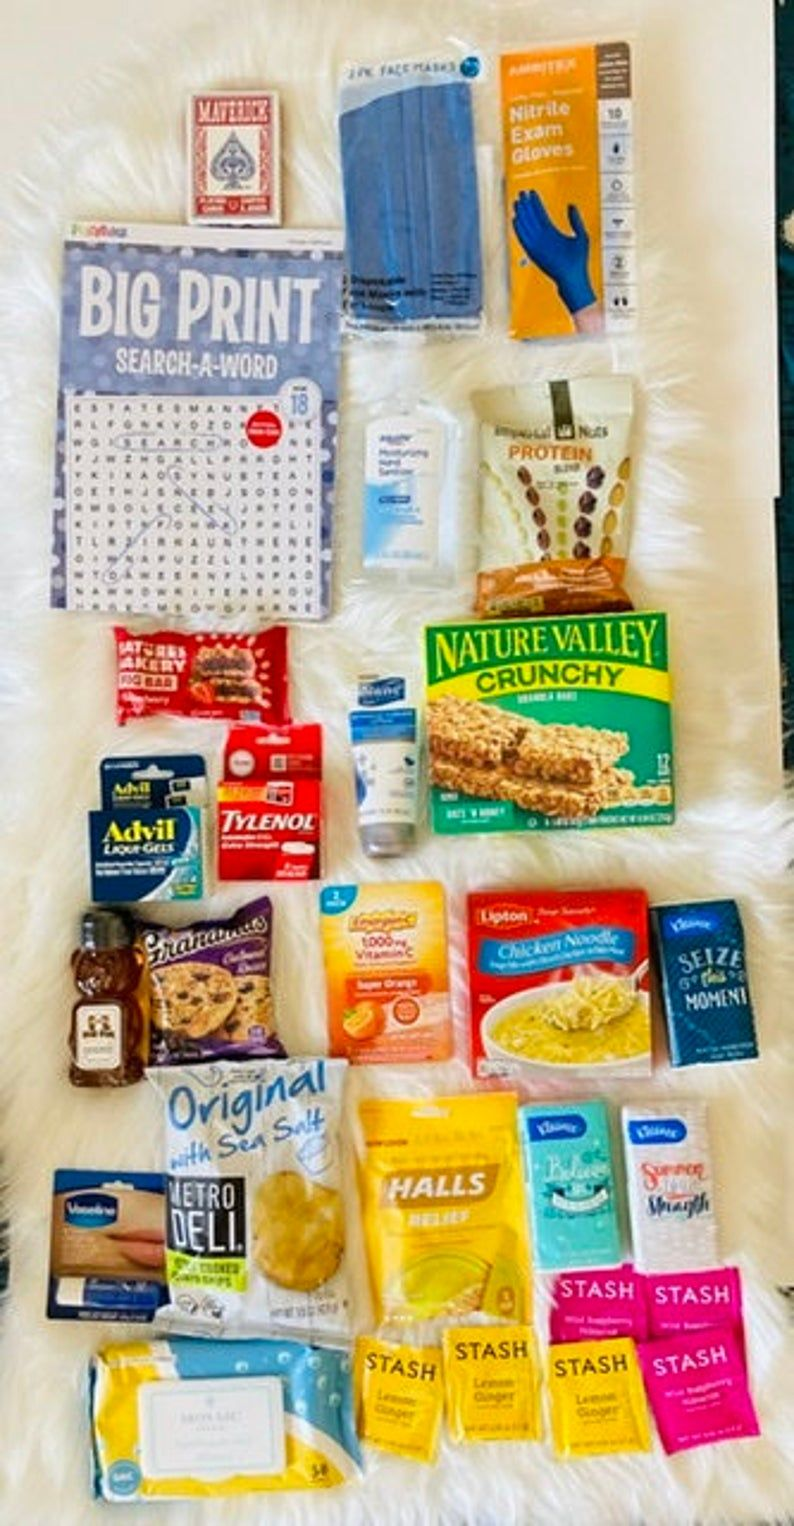 Get Well Recovery Deluxe Box Feel Better Gift Get Well Box Etsy Get Well Baskets Get Well Gift Baskets Feel Better Gifts